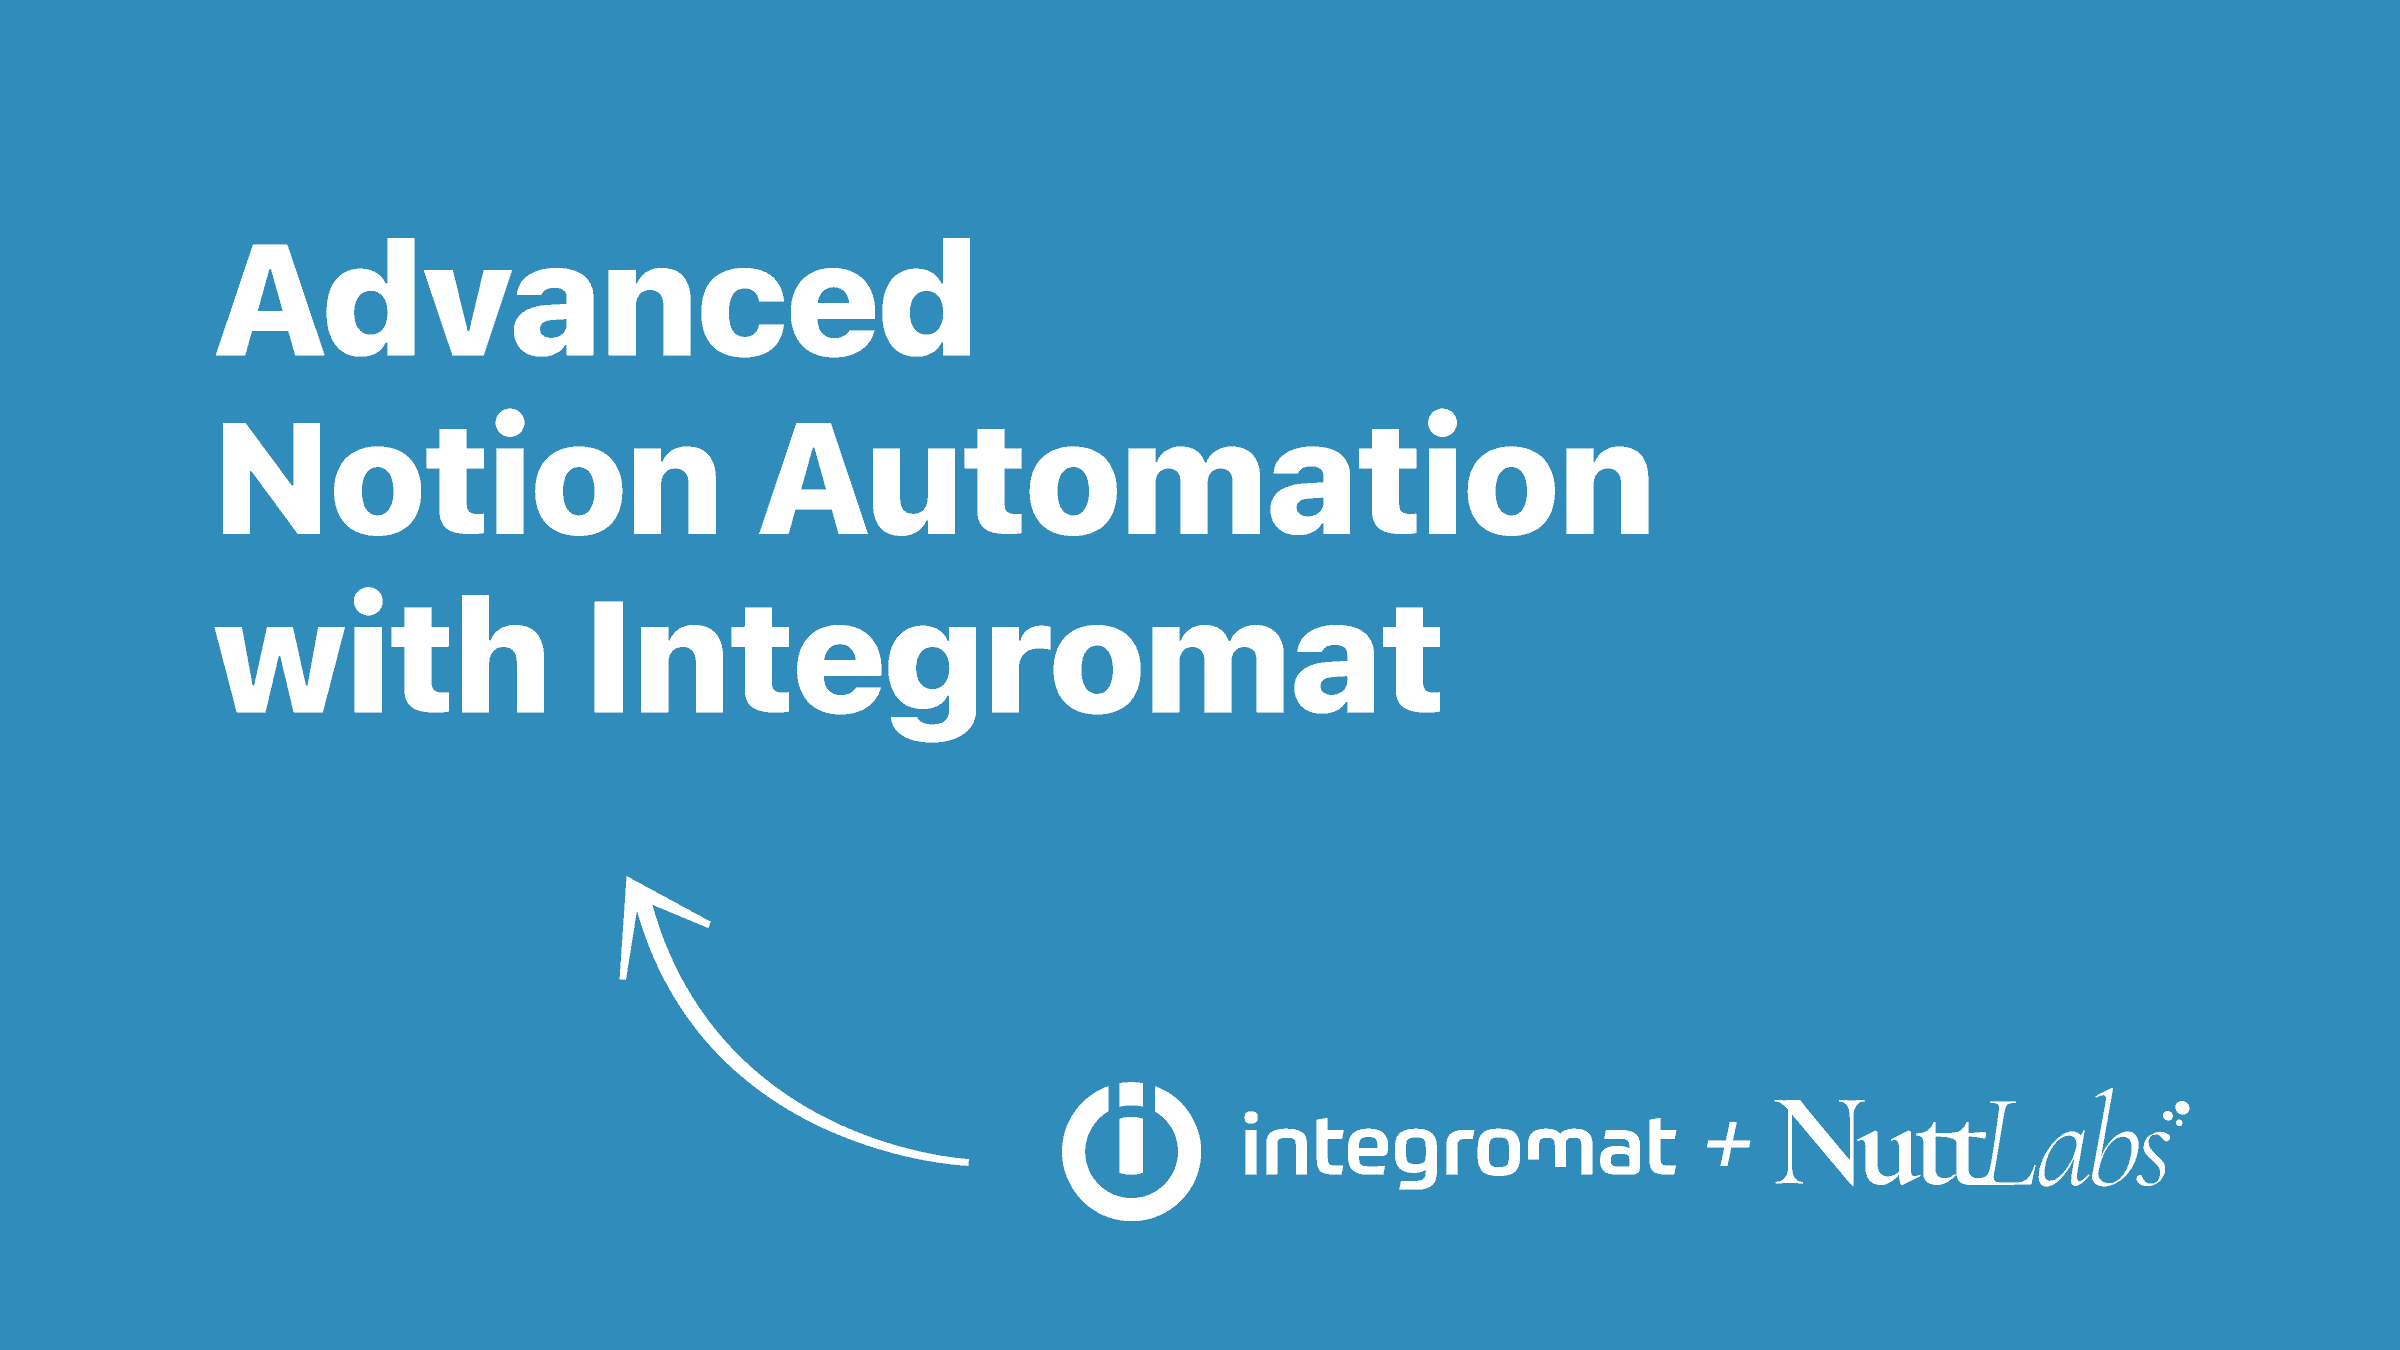 Advanced Notion Automation with Integromat